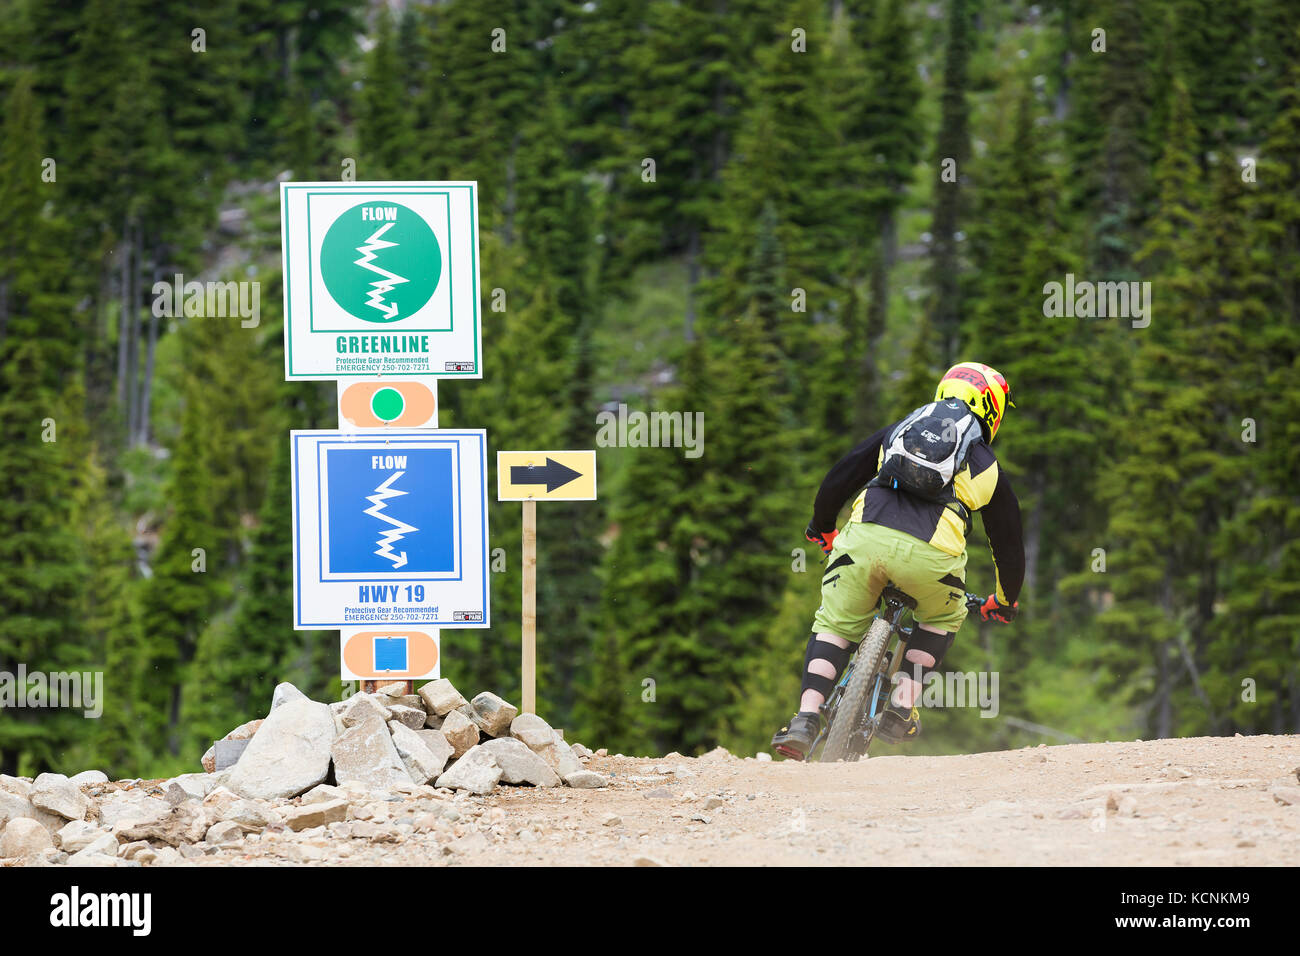 Signage indicating bike trail direction and level of difficulty at Mt. Washington, The Comox Valley, Vancouver Island, - Stock Image